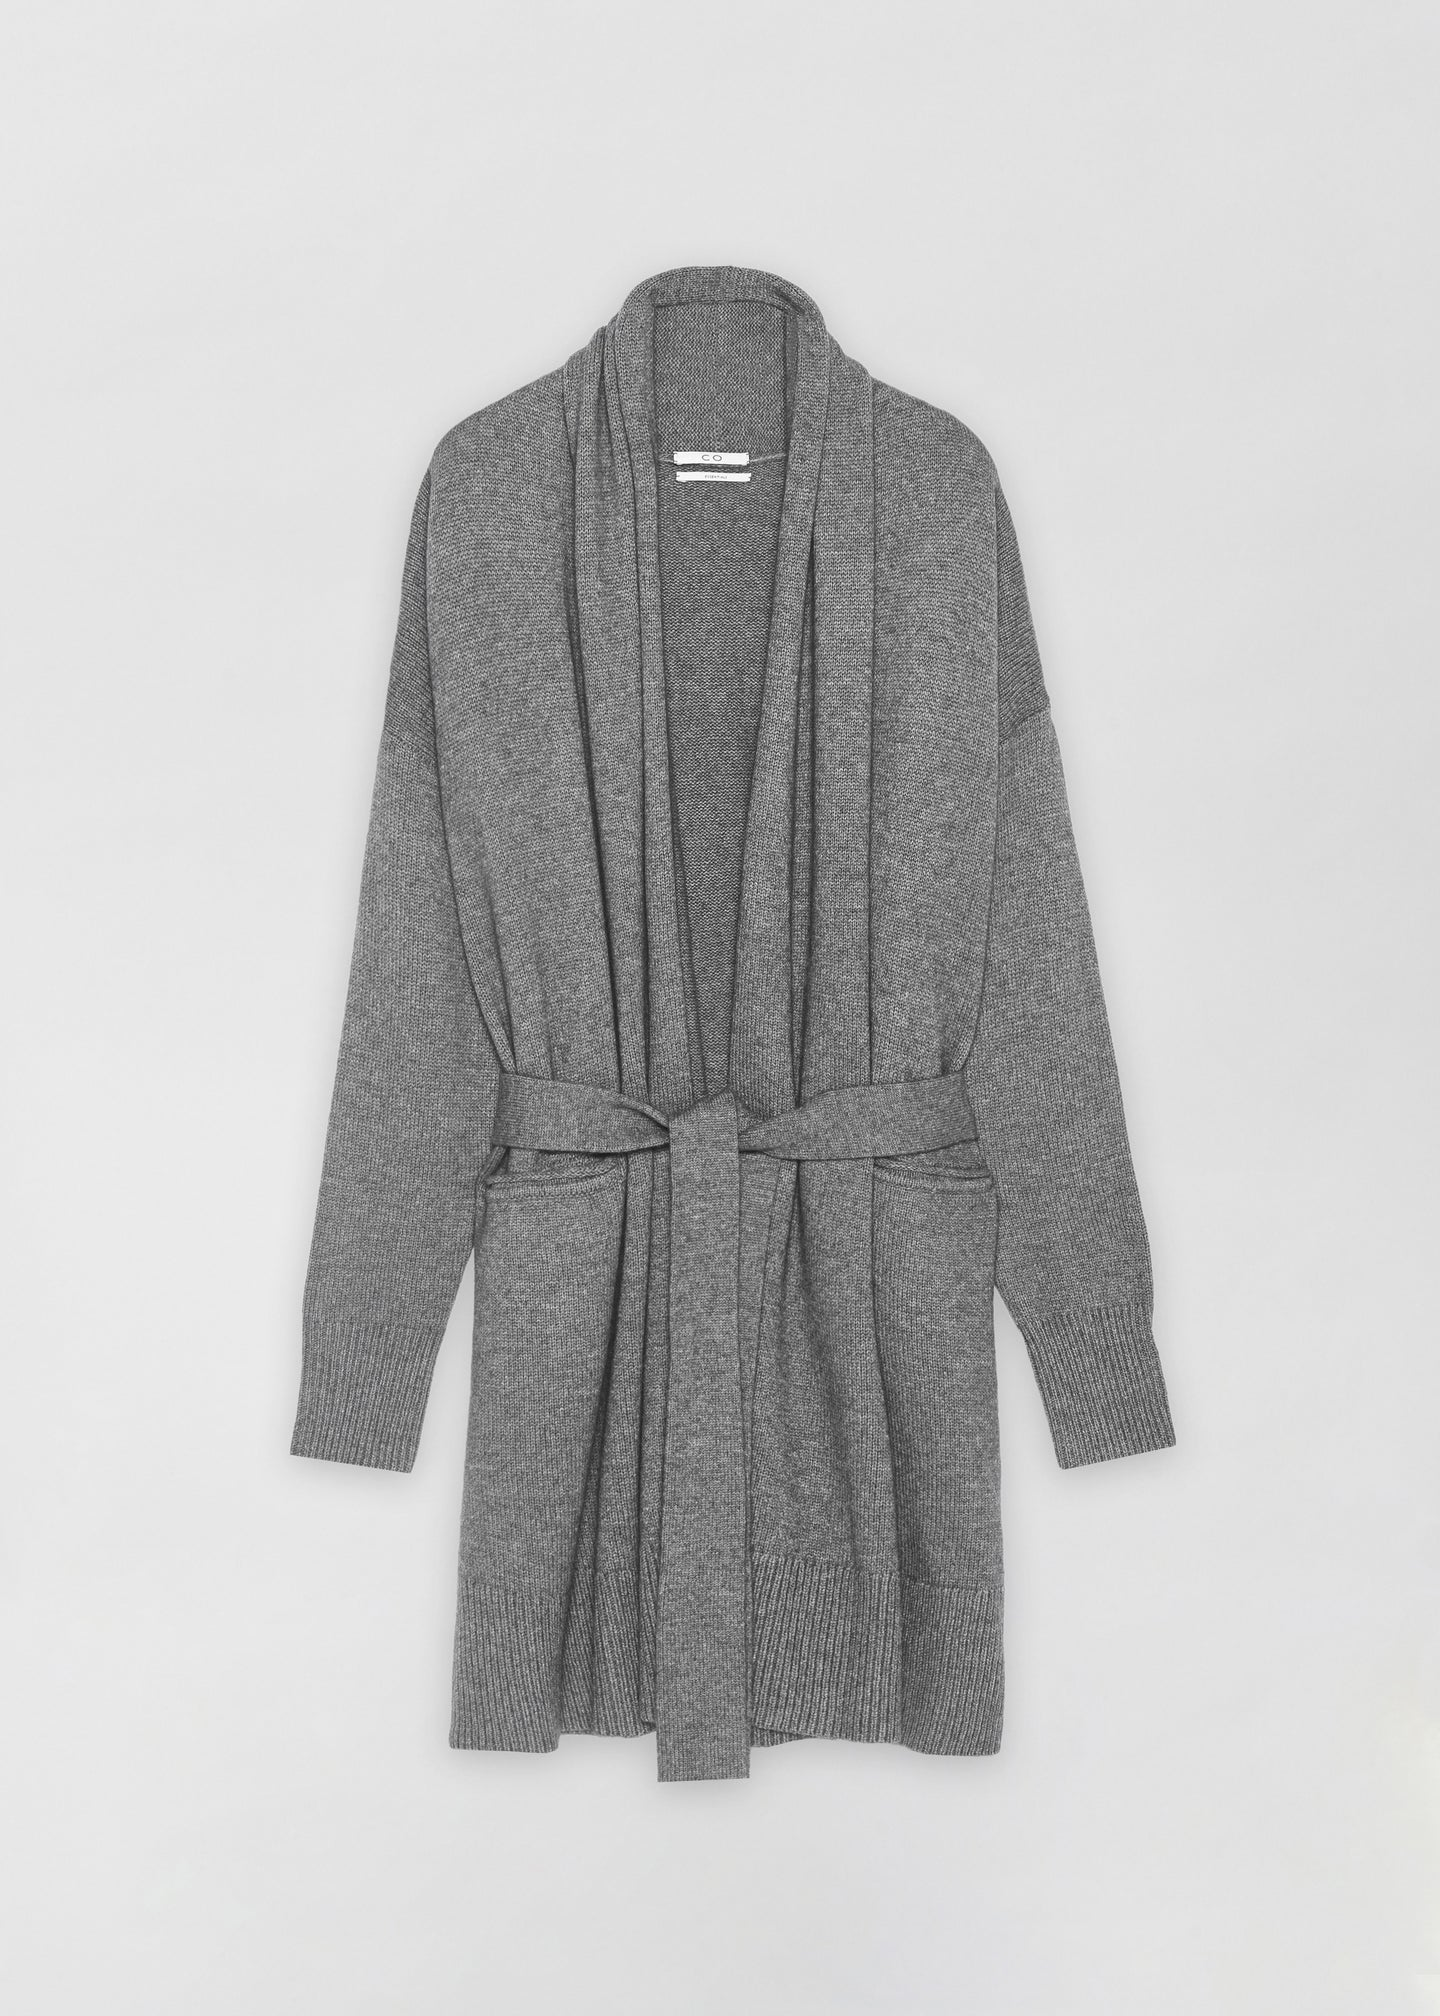 Shawl Collar Cardigan - Grey - Co Collections